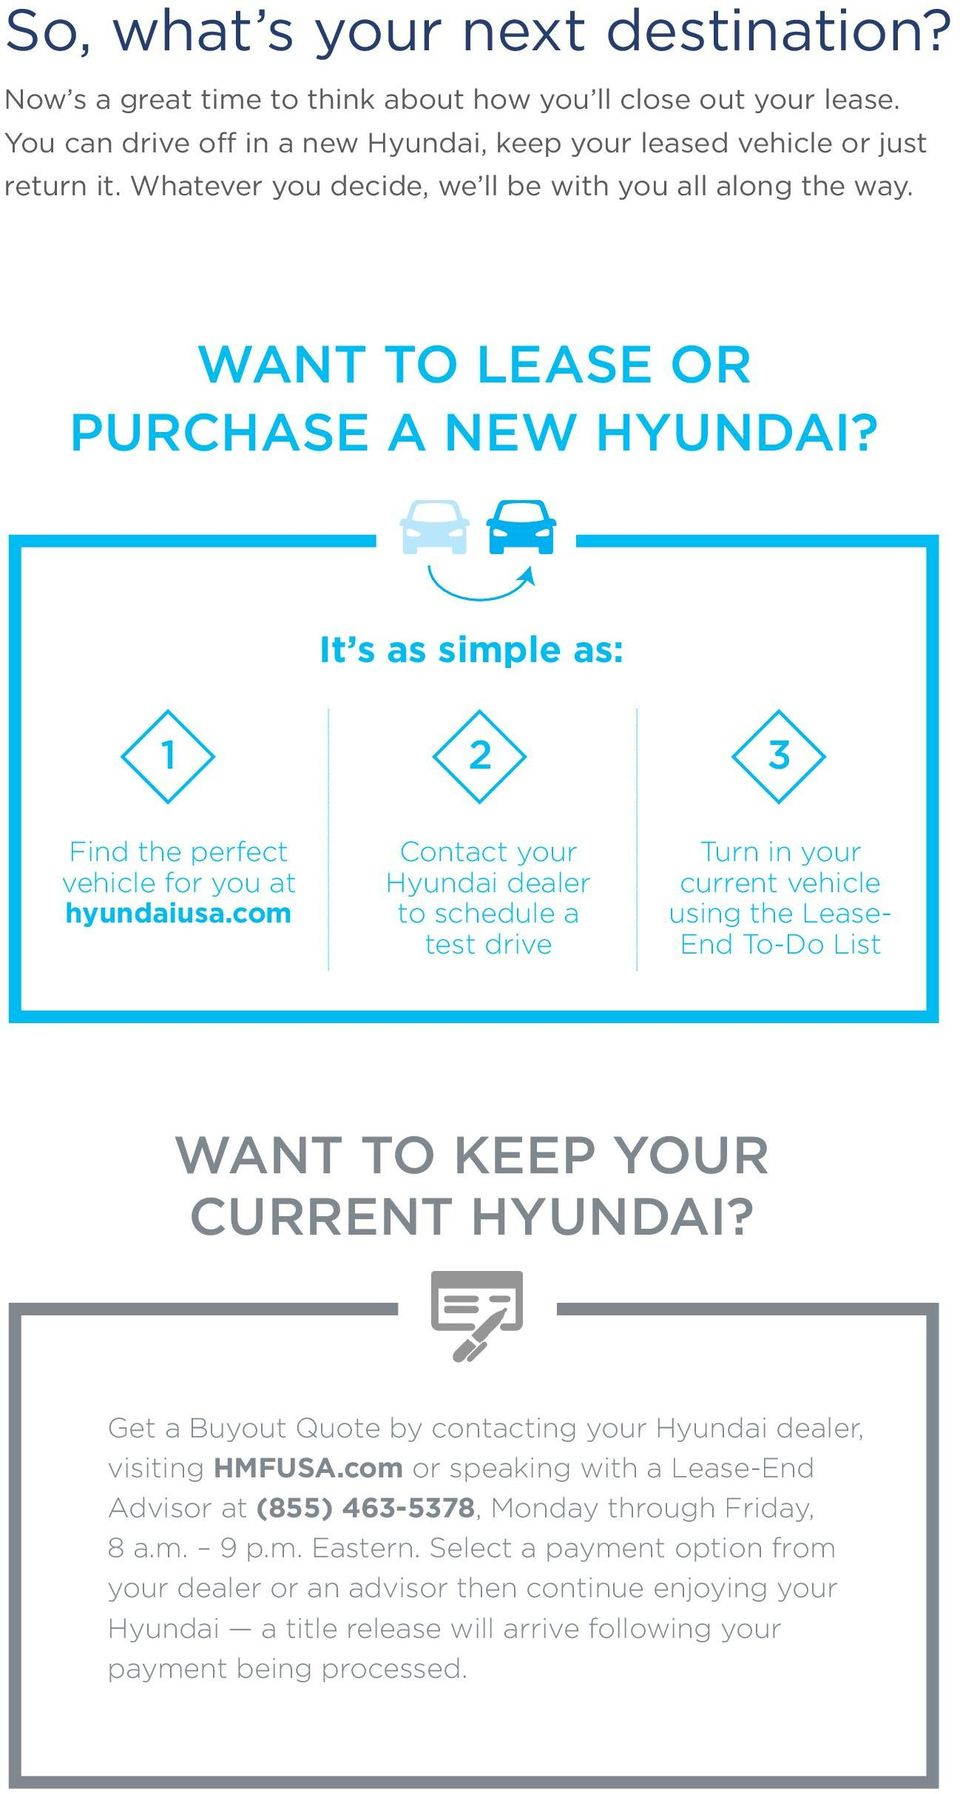 com Contact your Hyundai dealer to schedule a test drive Turn in your current vehicle using the Lease- End To-Do List WANT TO KEEP YOUR CURRENT HYUNDAI?